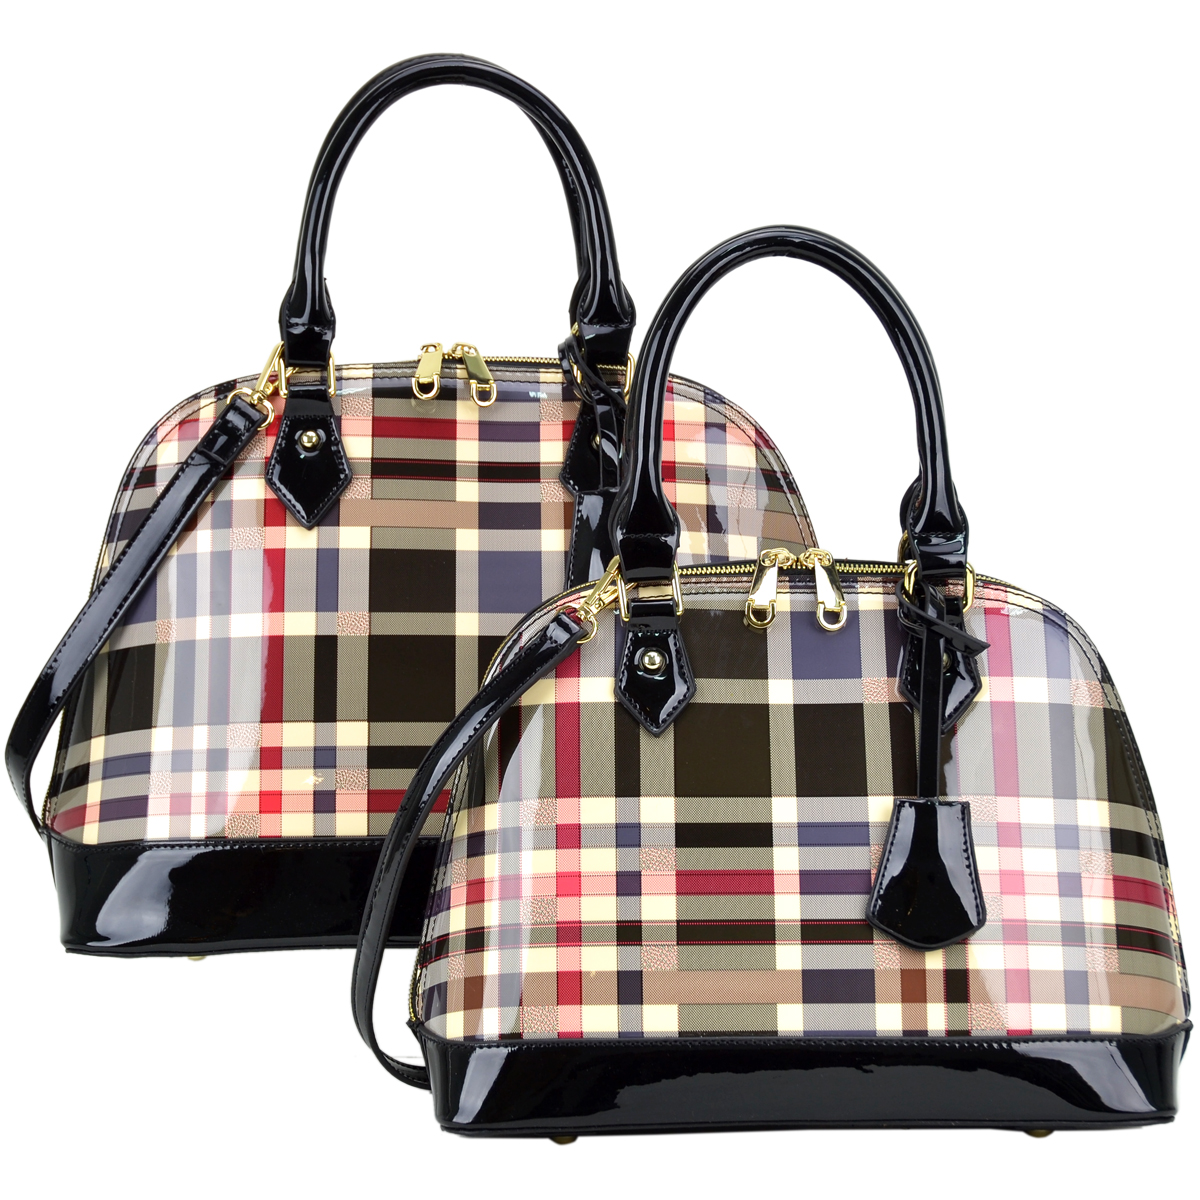 Plaid Design Patent Leather Medium plus Mini (Bag in a Bag) Dome Shaped Satchel